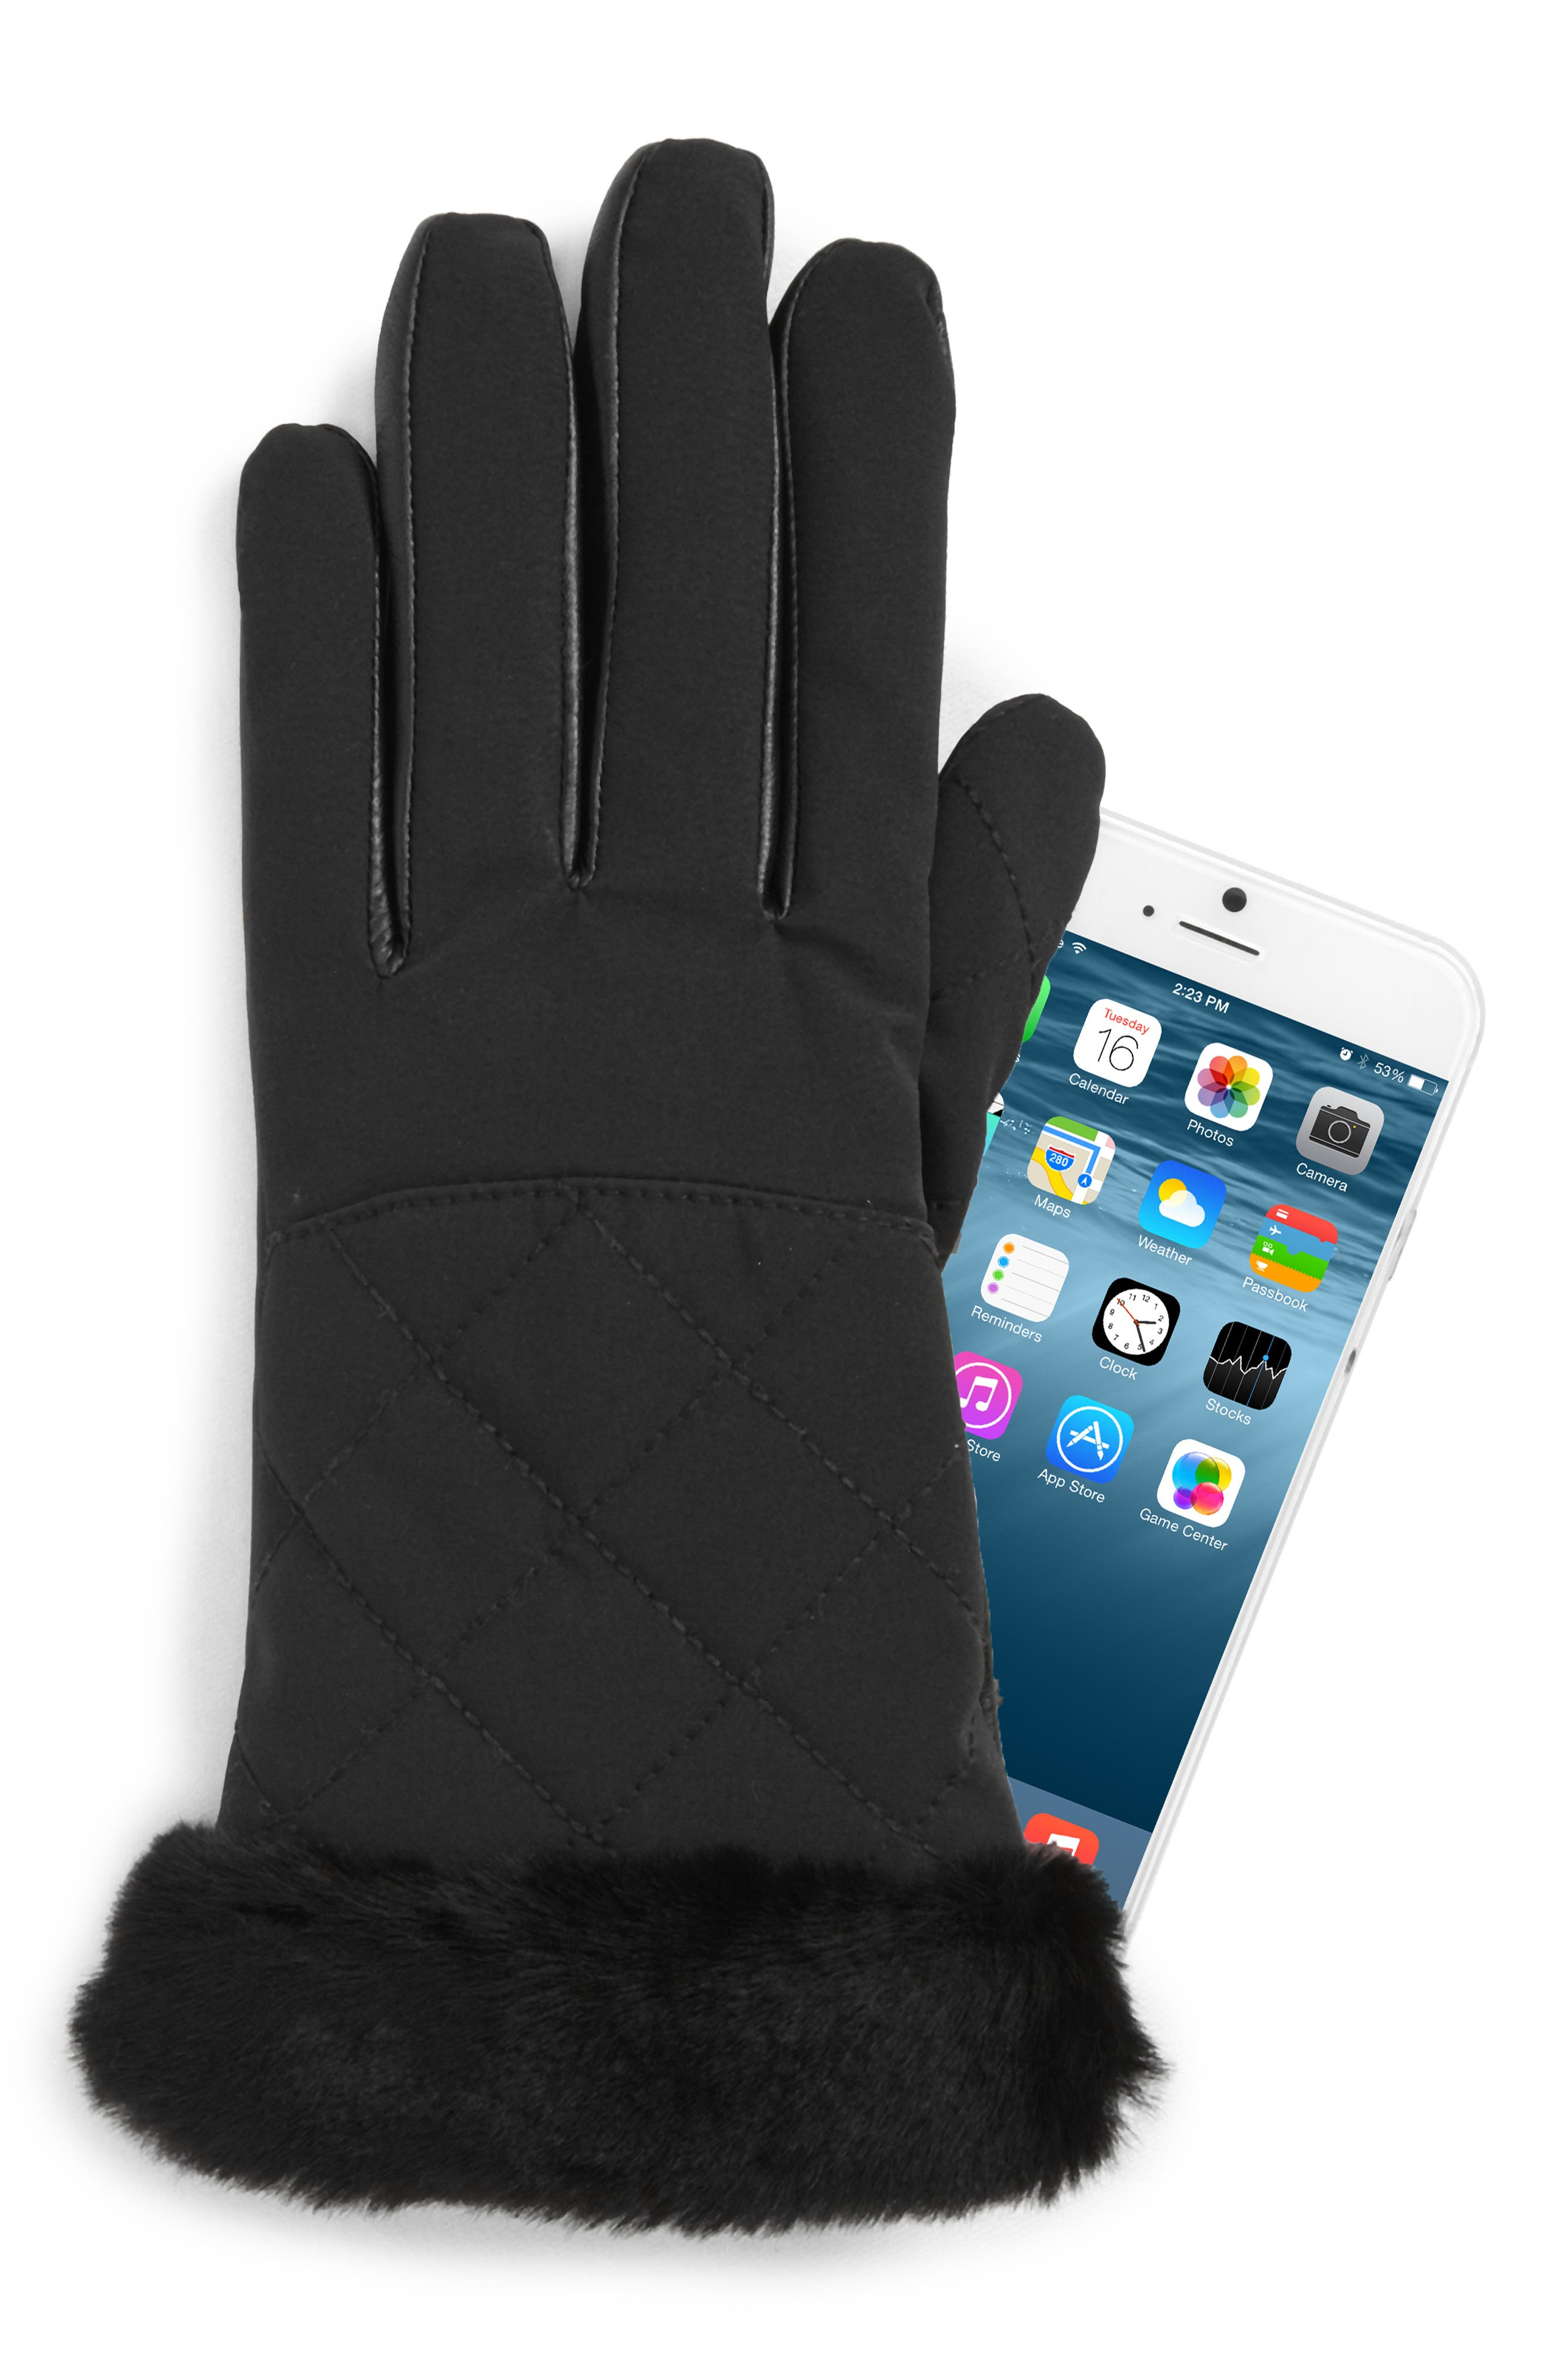 UGG<sup>®</sup> Water Resistant Touchscreen Quilted Nylon, Leather & Genuine Shearling Gloves,                             Alternate thumbnail 2, color,                             001